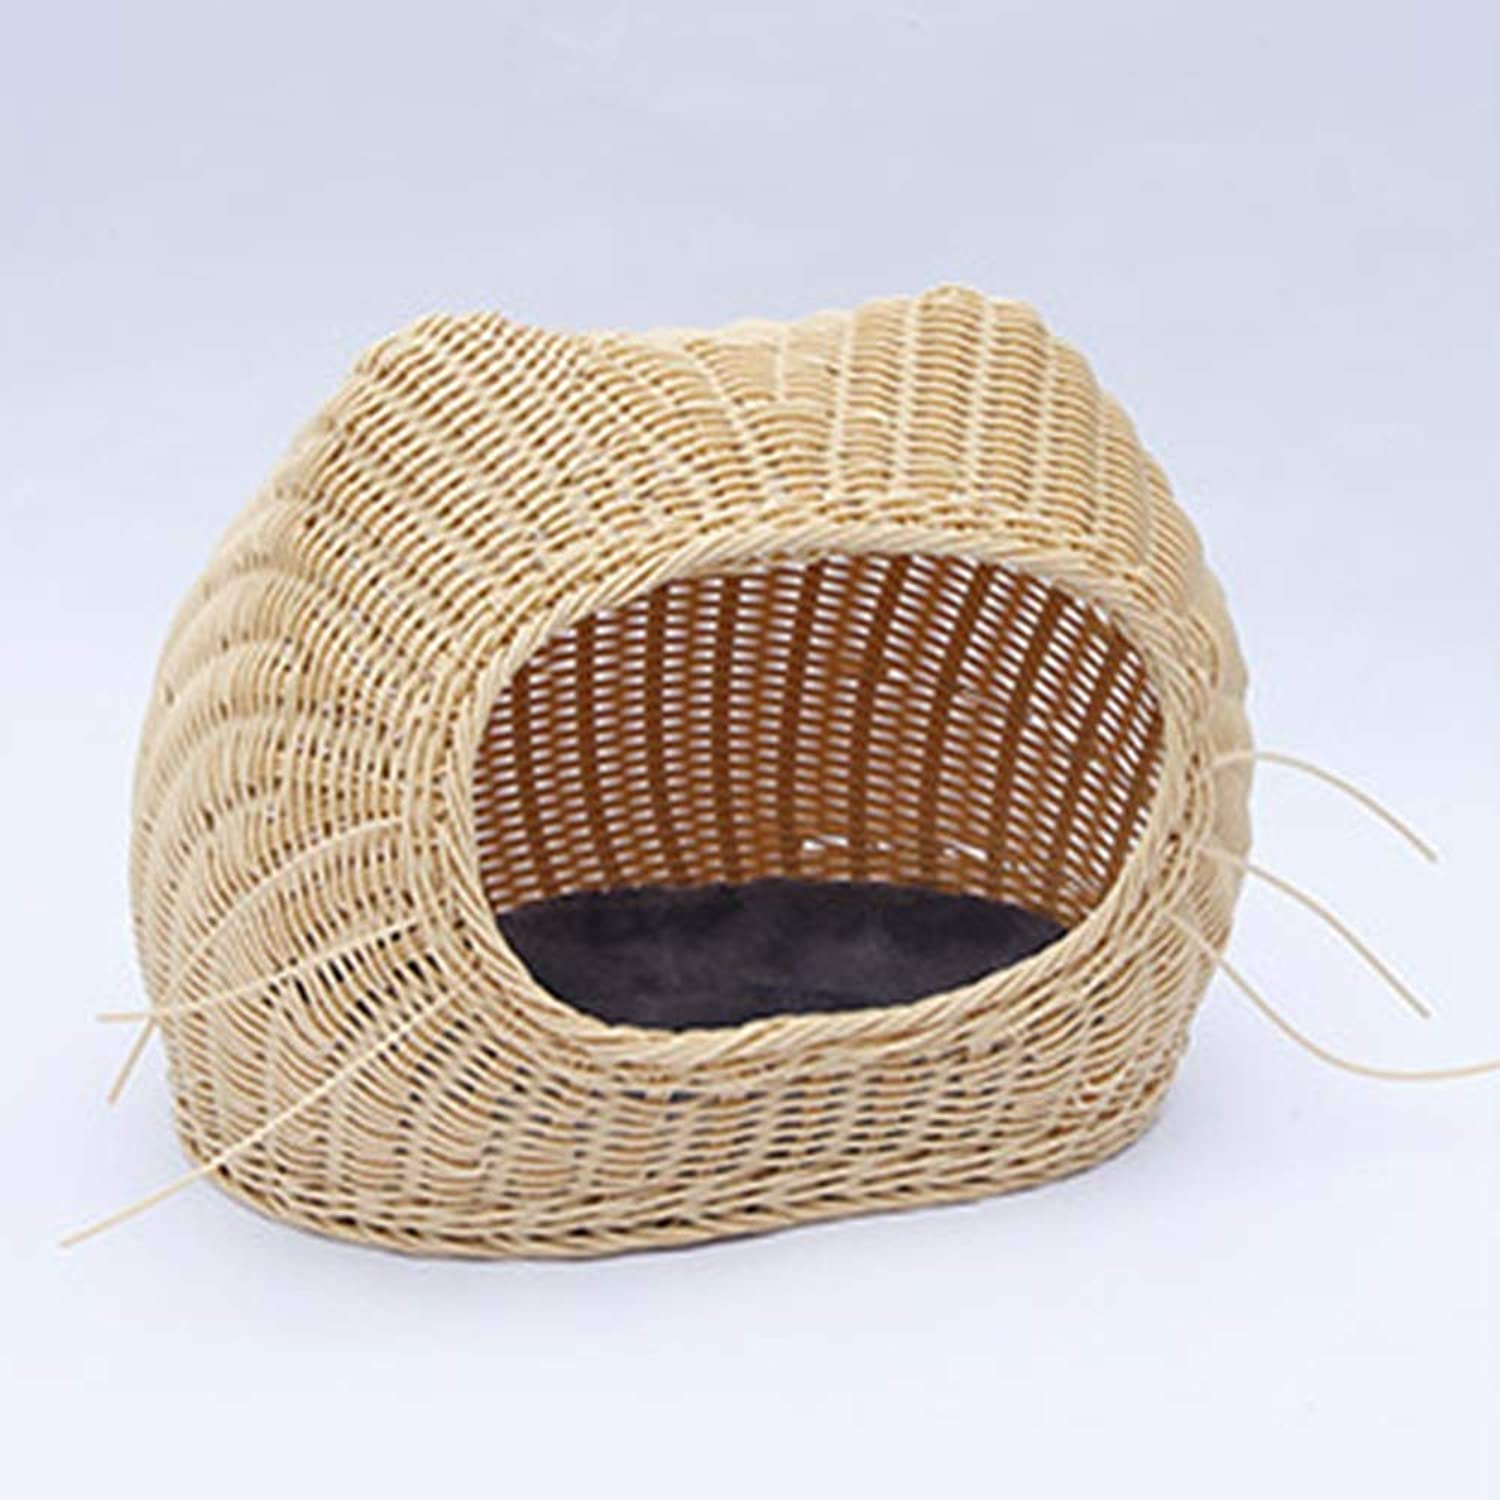 GGGGG Beard kennel, washable and simple small Teddy kennel rattan pet nest